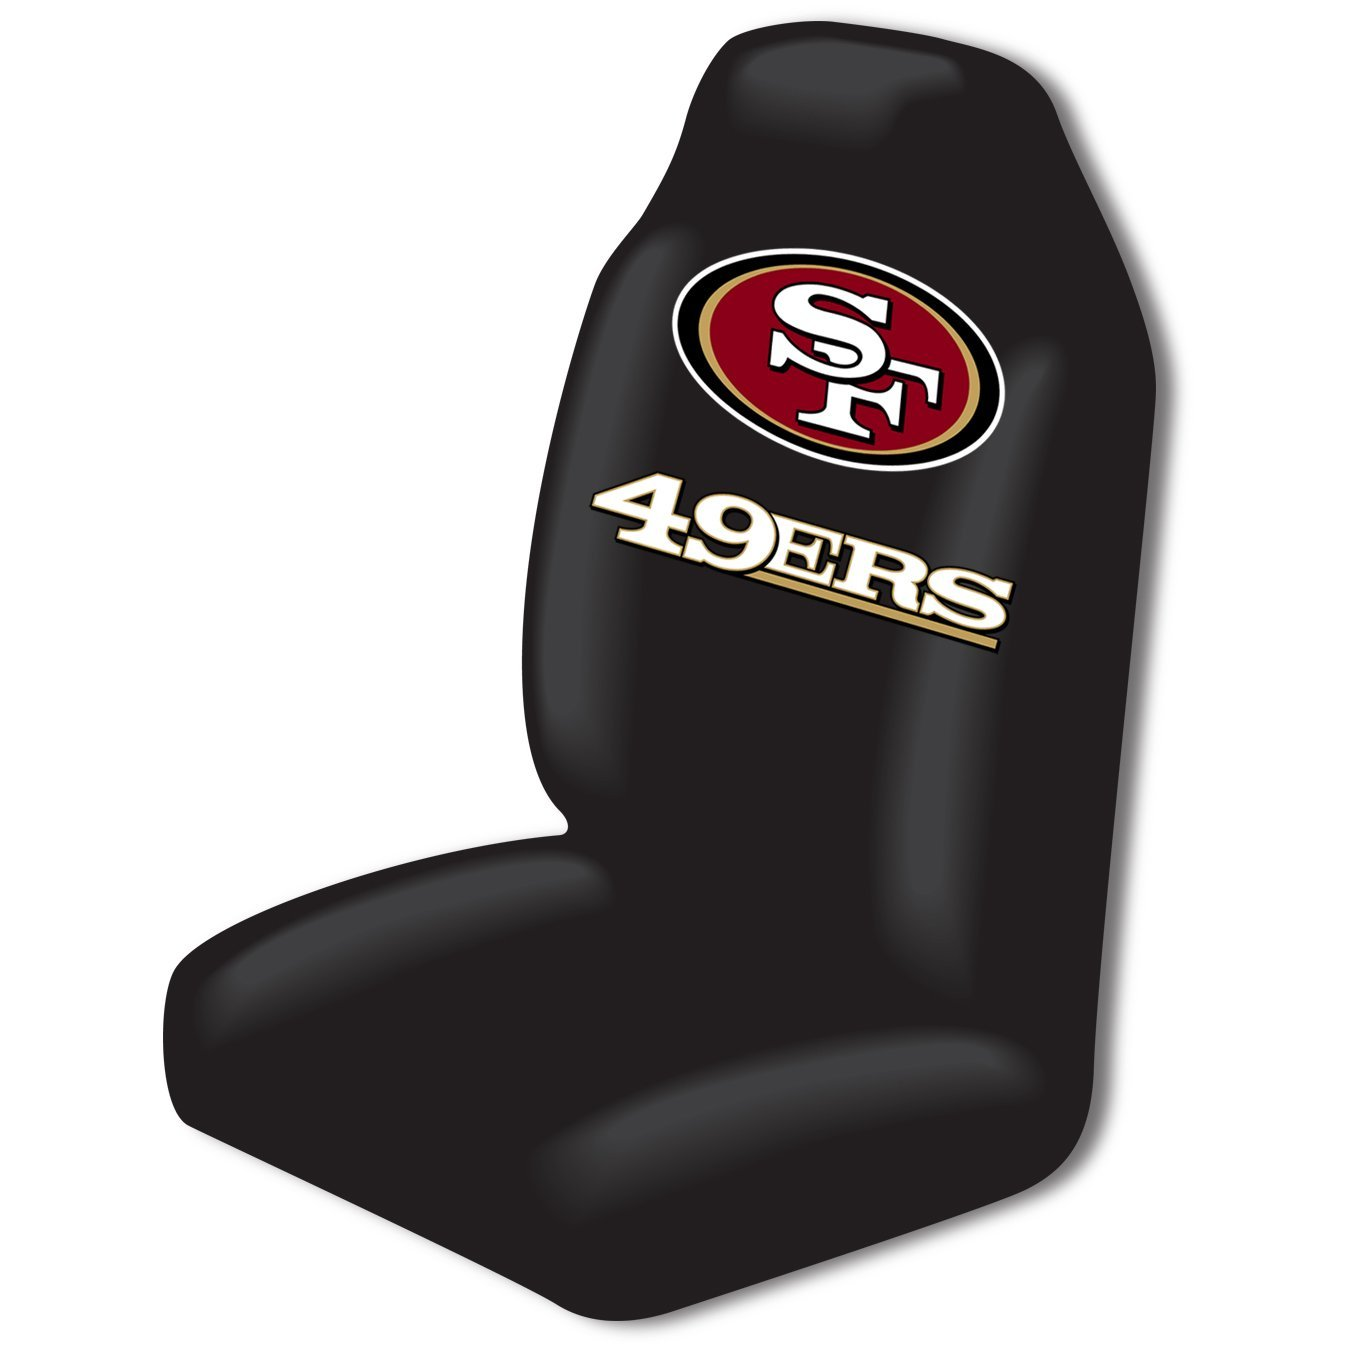 49ers Car Seat Cover (NFL)